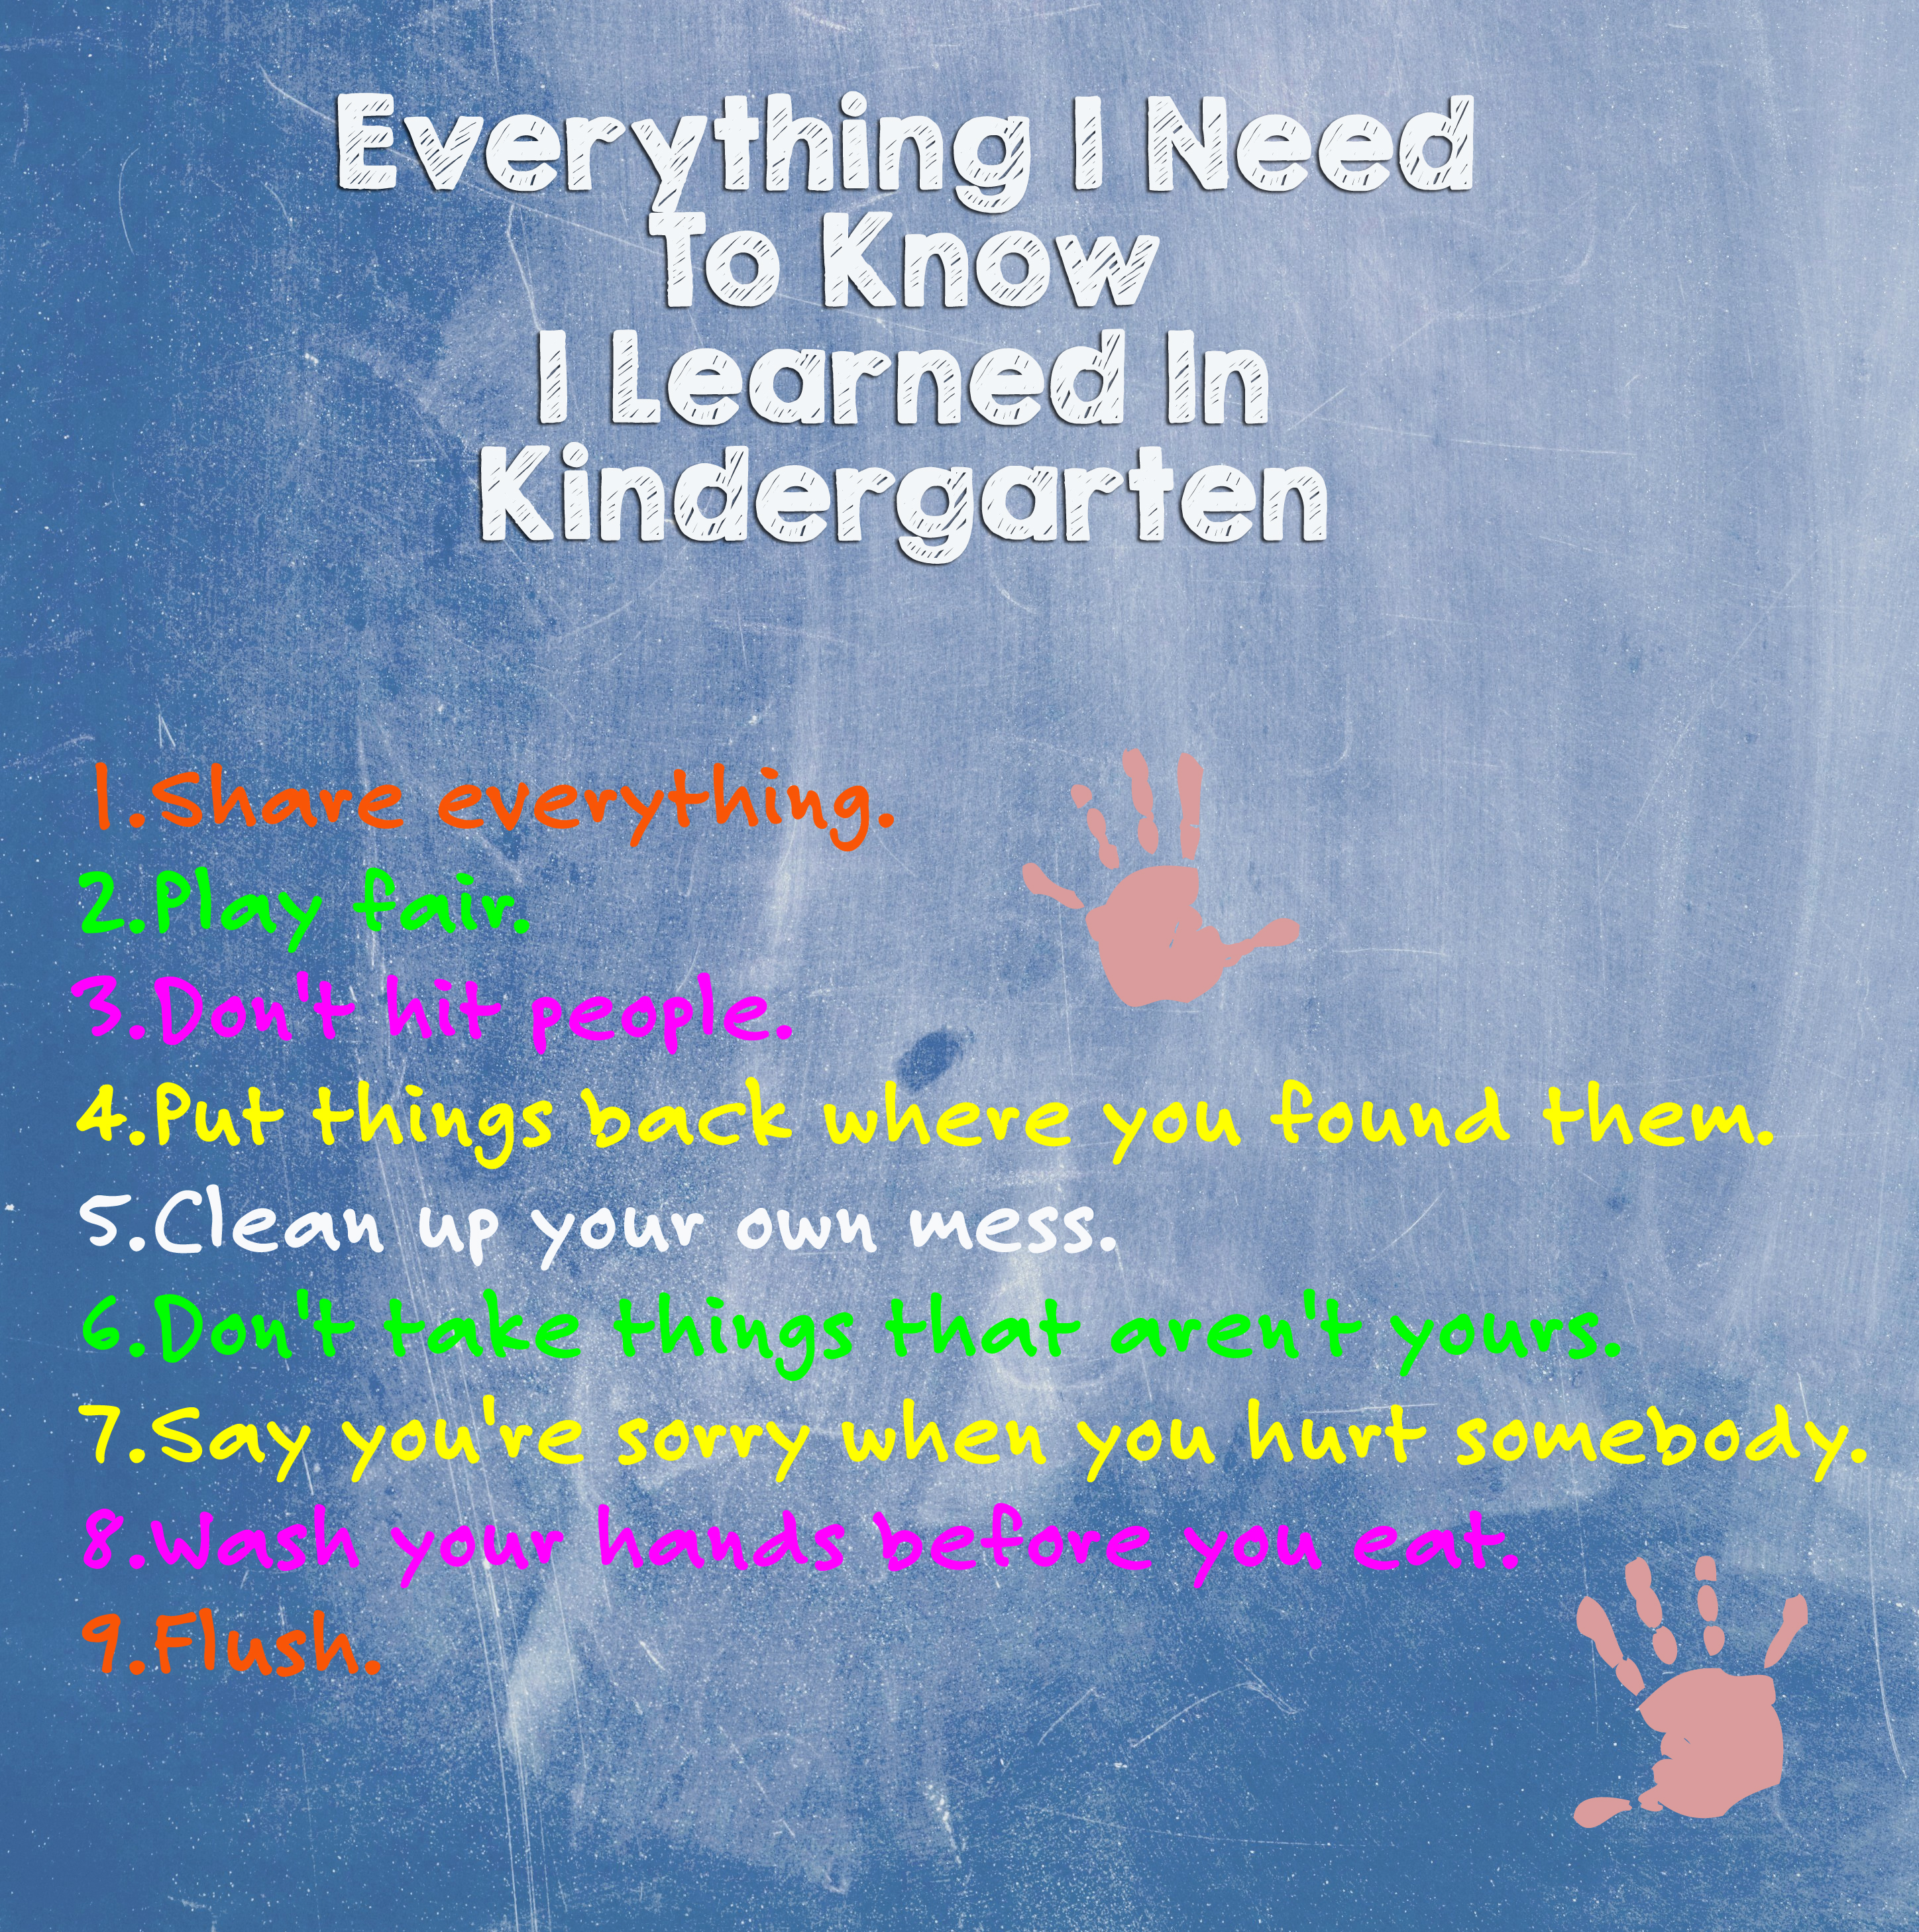 Everything I Need To Know I Learned in Kindergarten